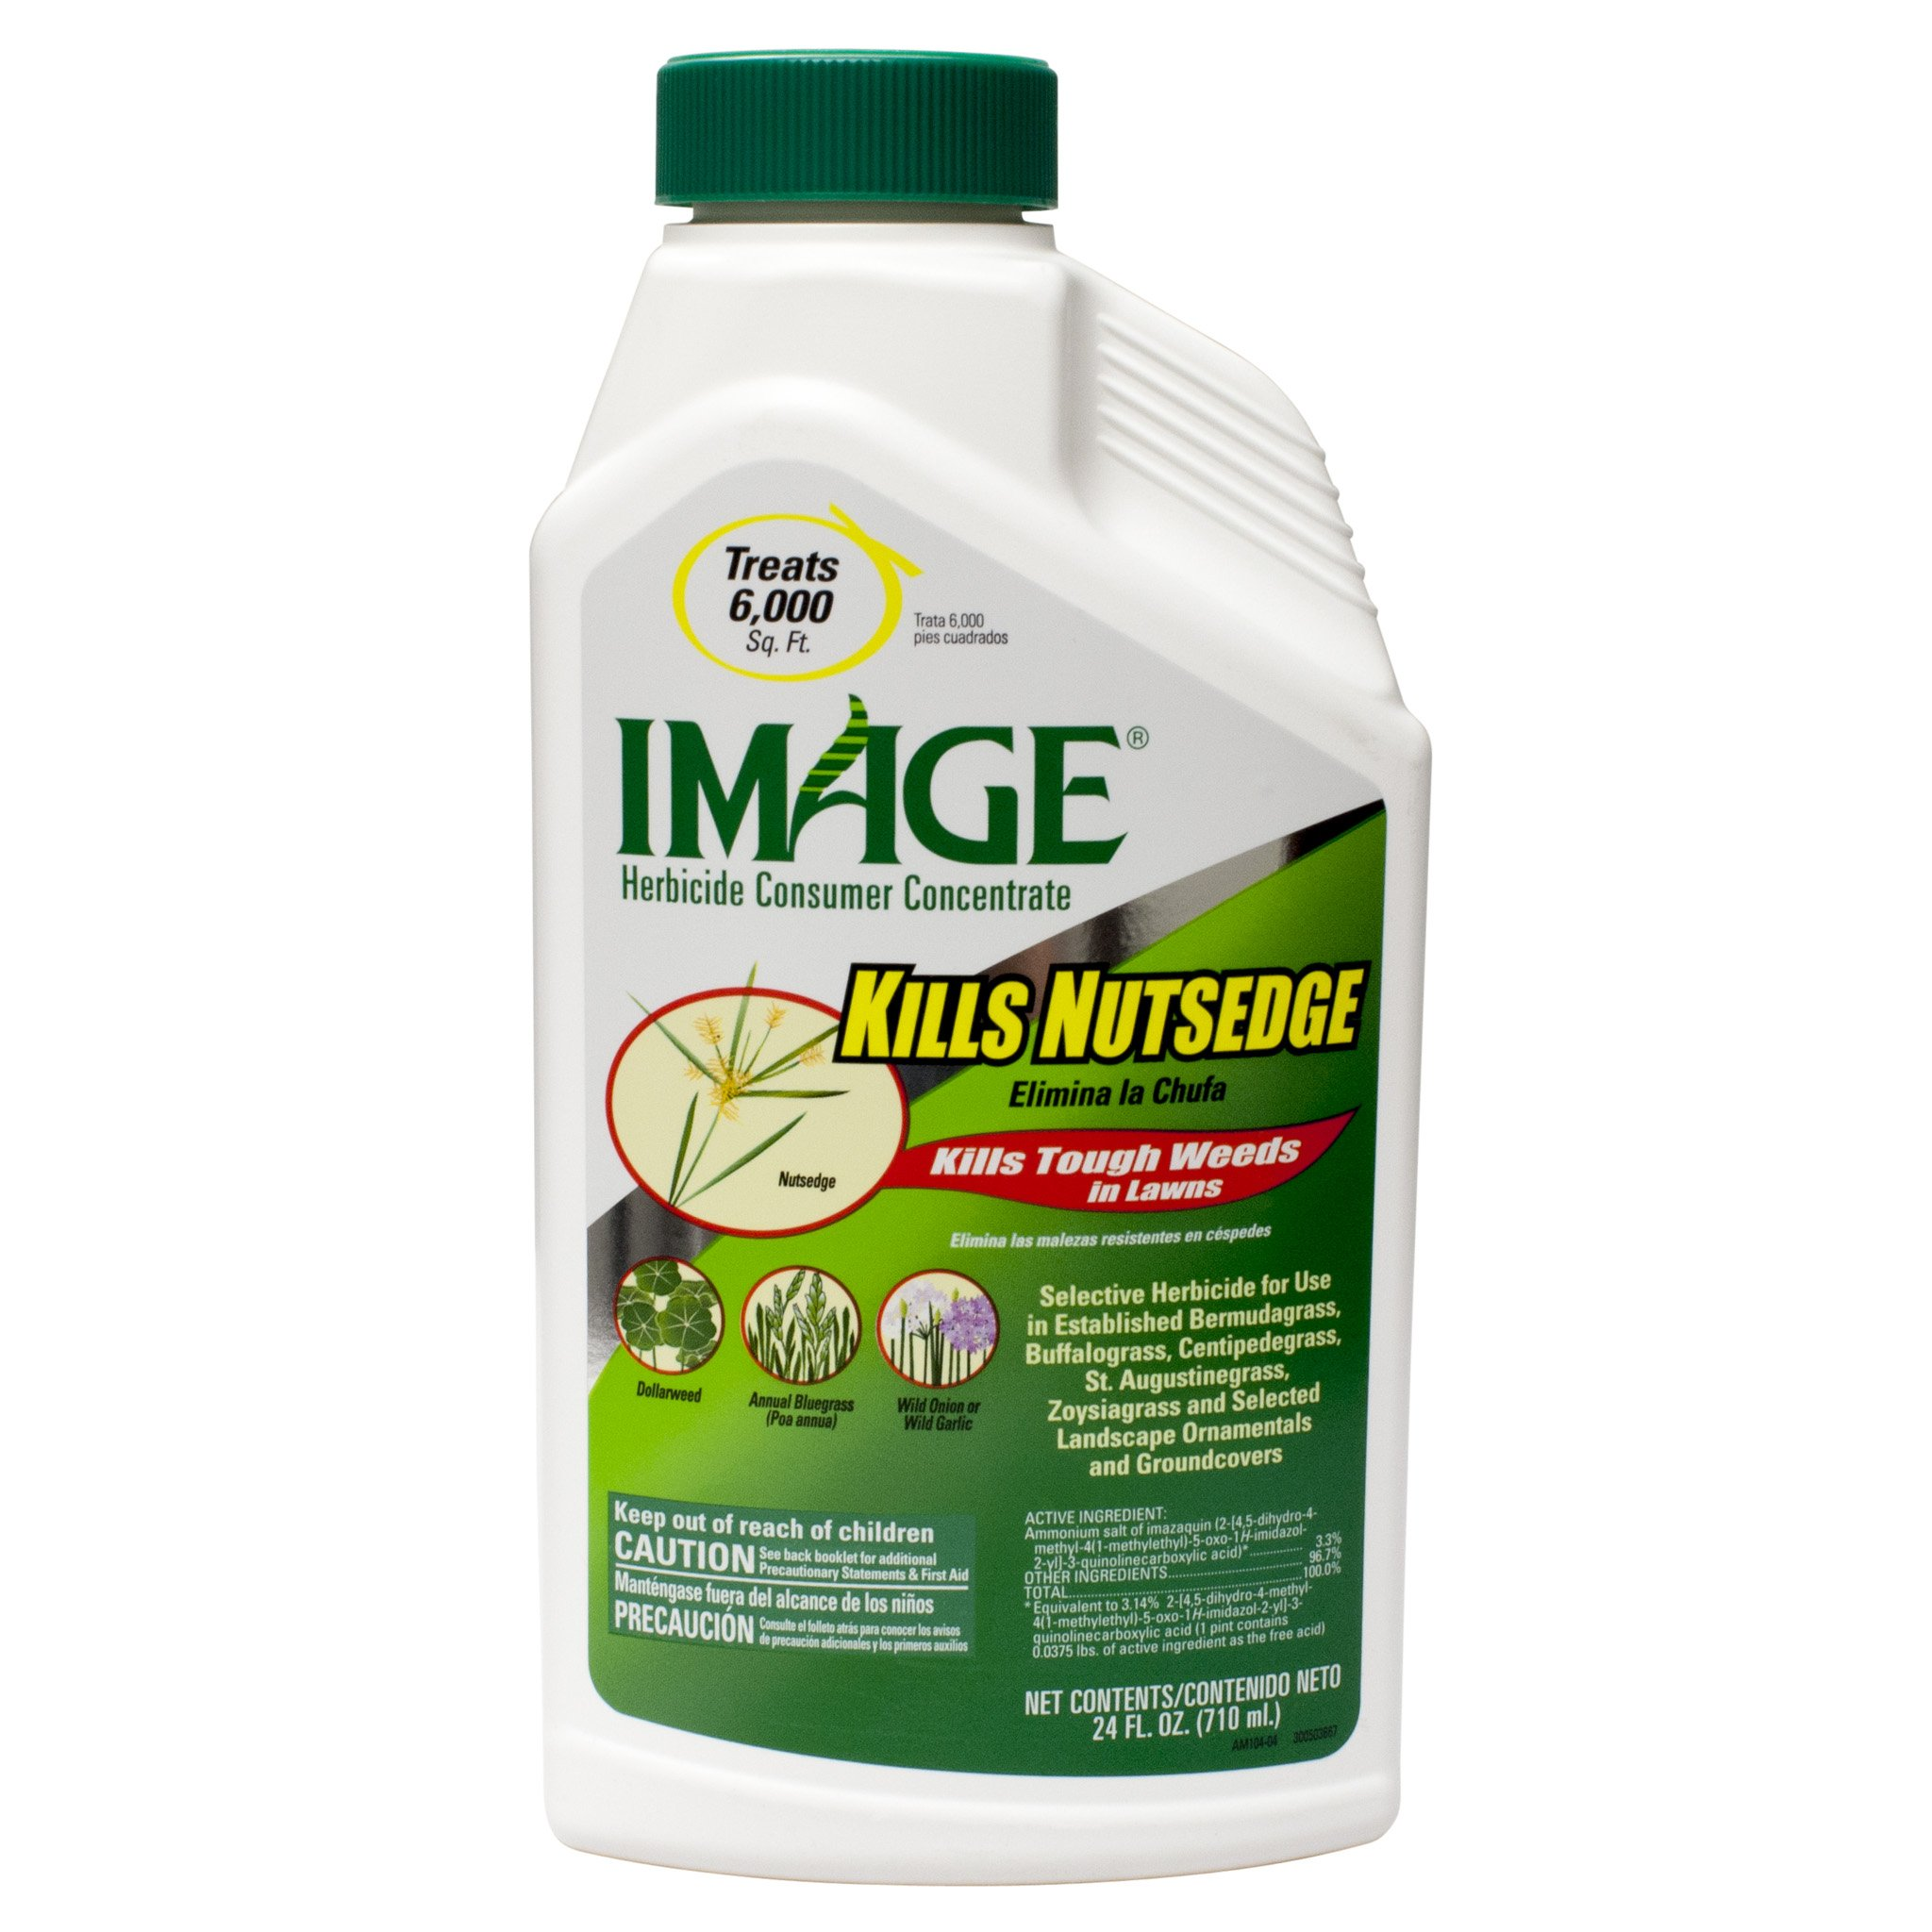 Image 100099405 Kills Nutsedge Concentrate, 24 Ounce